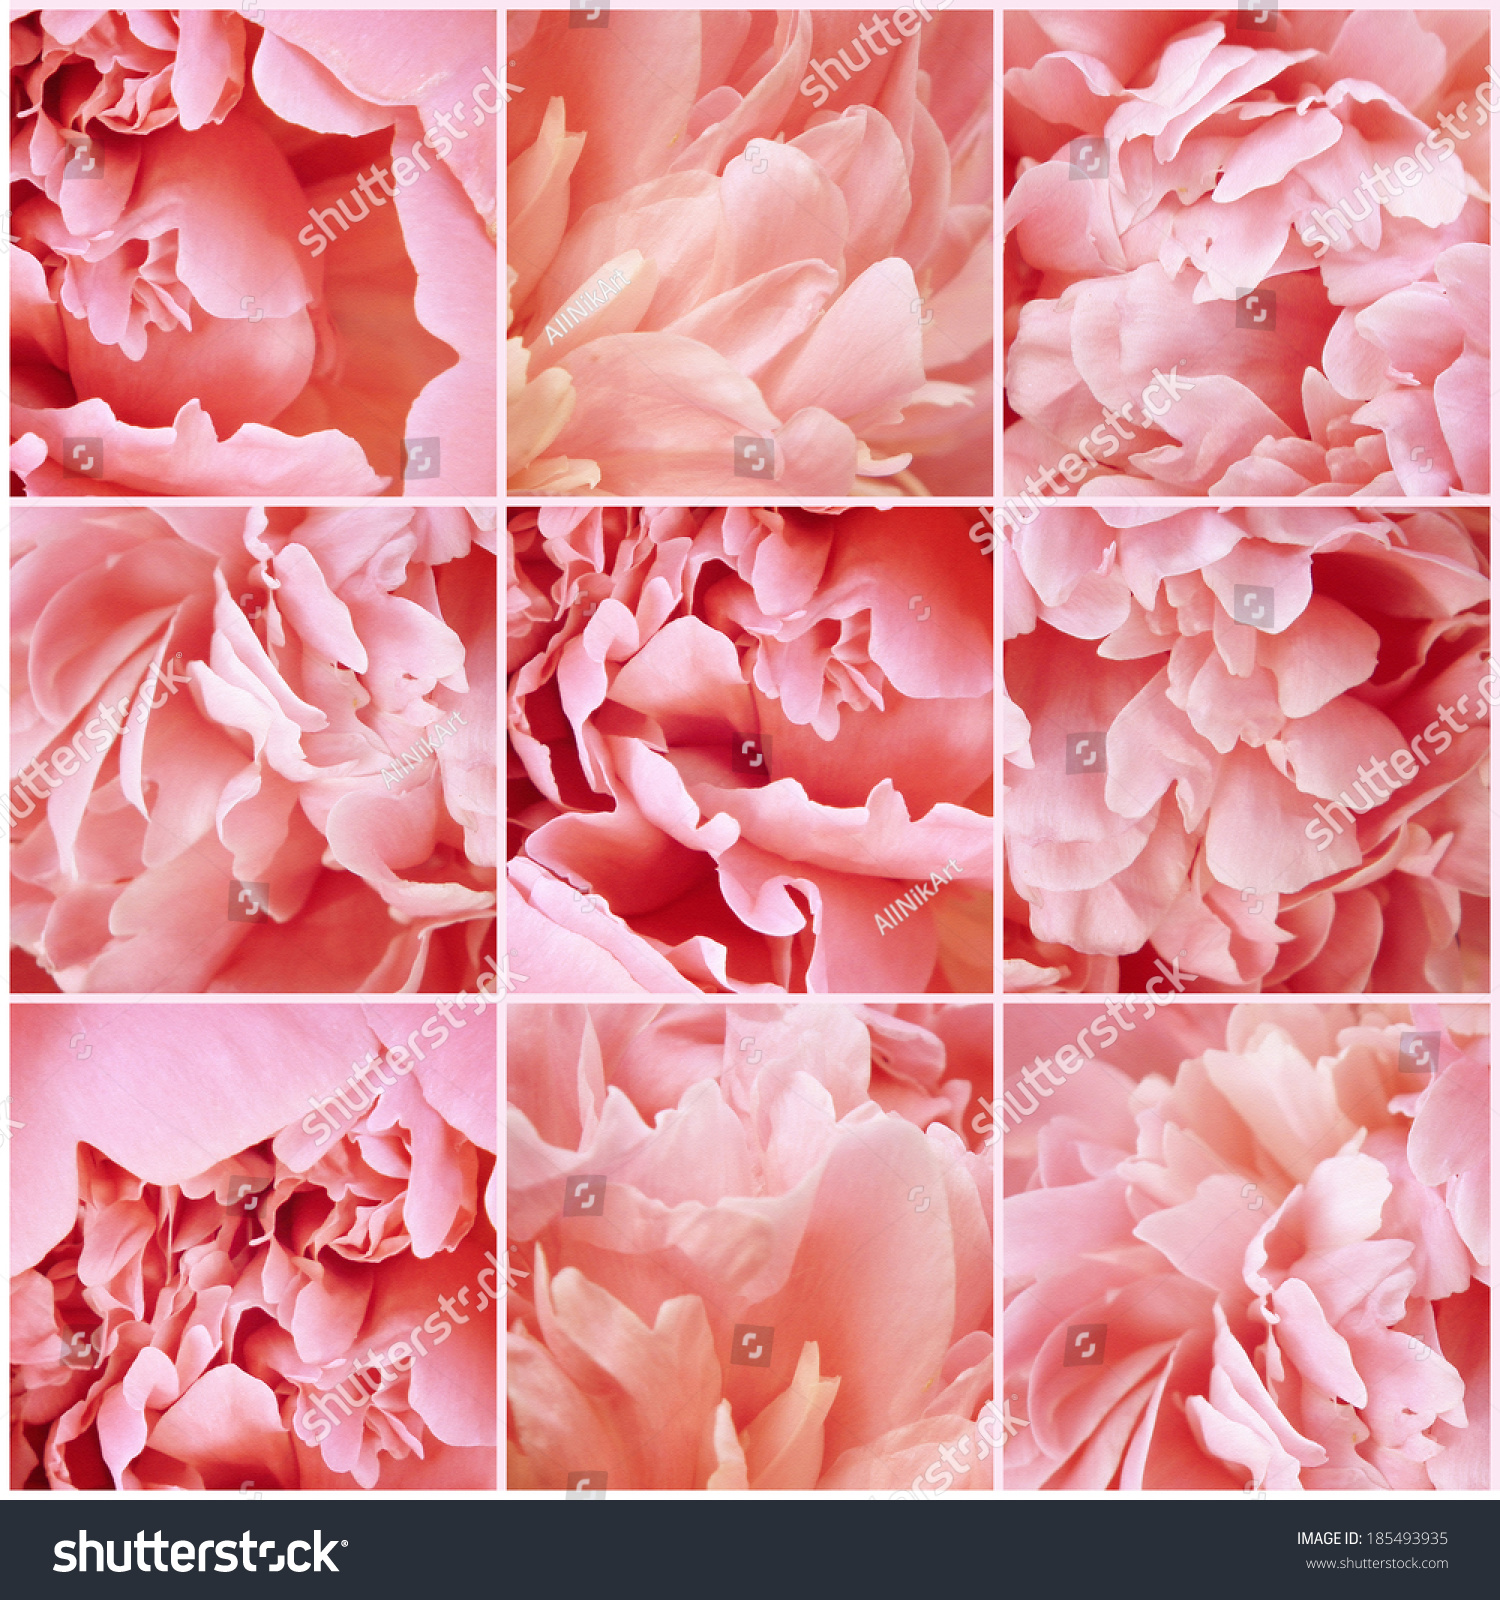 Vintage Collage Flowers Peony Pink Petals Stock Photo Royalty Free